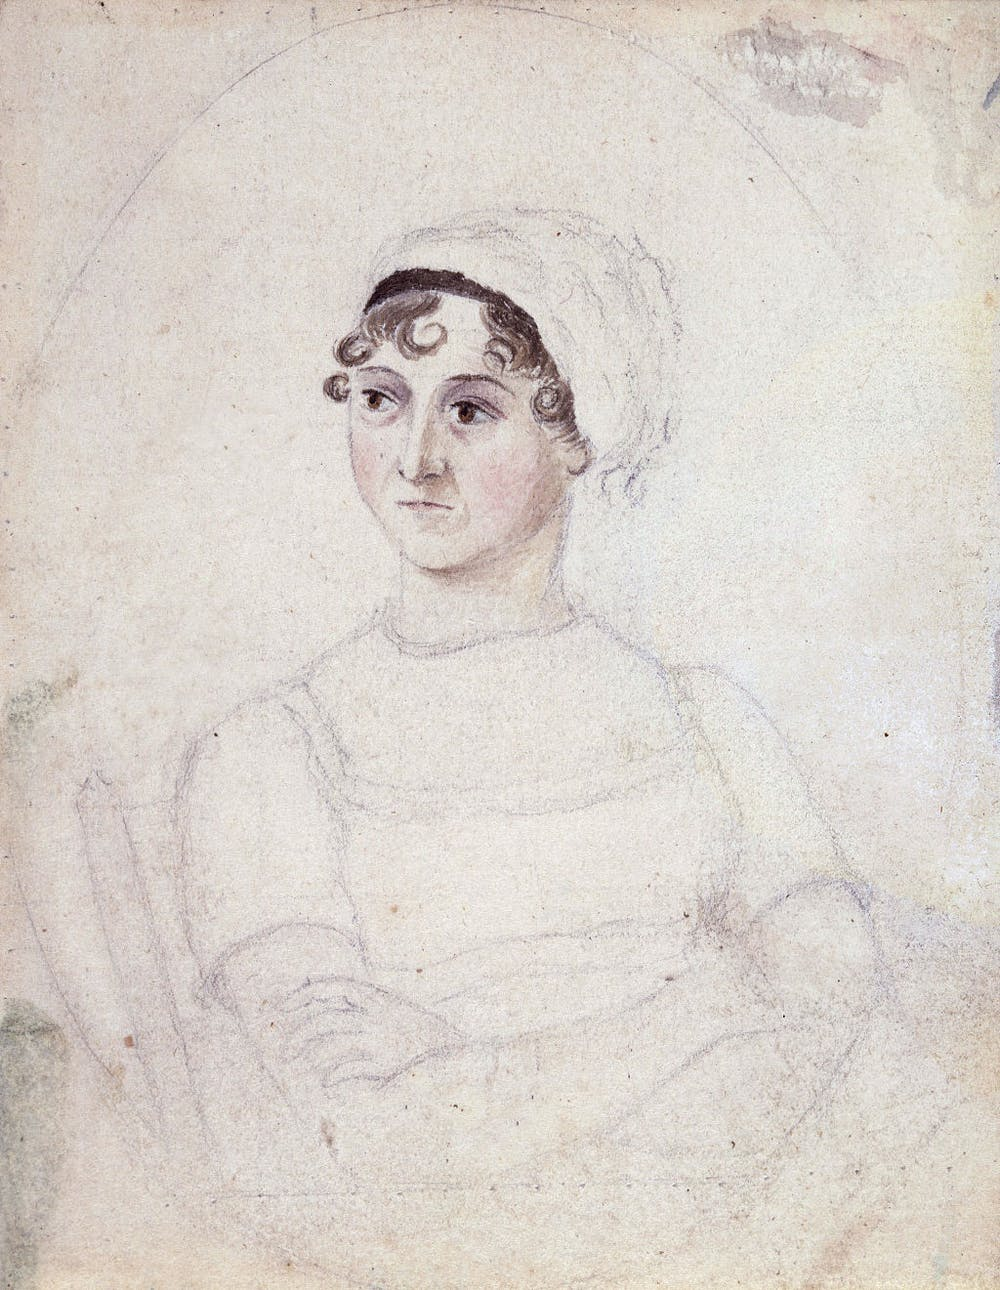 Friday essay: Jane Austen's Emma at 200